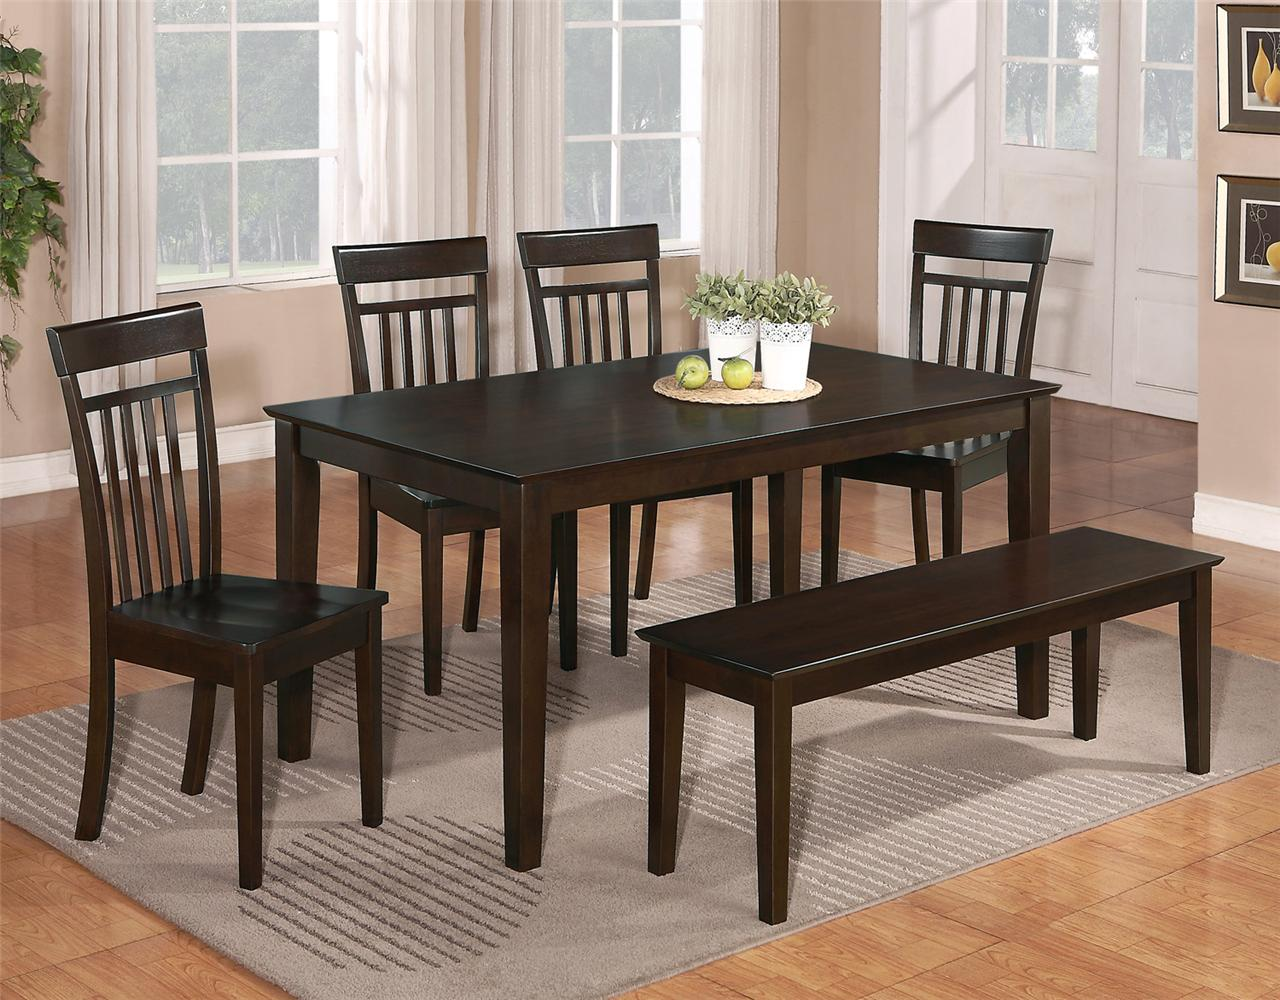 6 pc dinette kitchen dining room set table w 4 wood chair and 1 bench cappuccino ebay. Black Bedroom Furniture Sets. Home Design Ideas